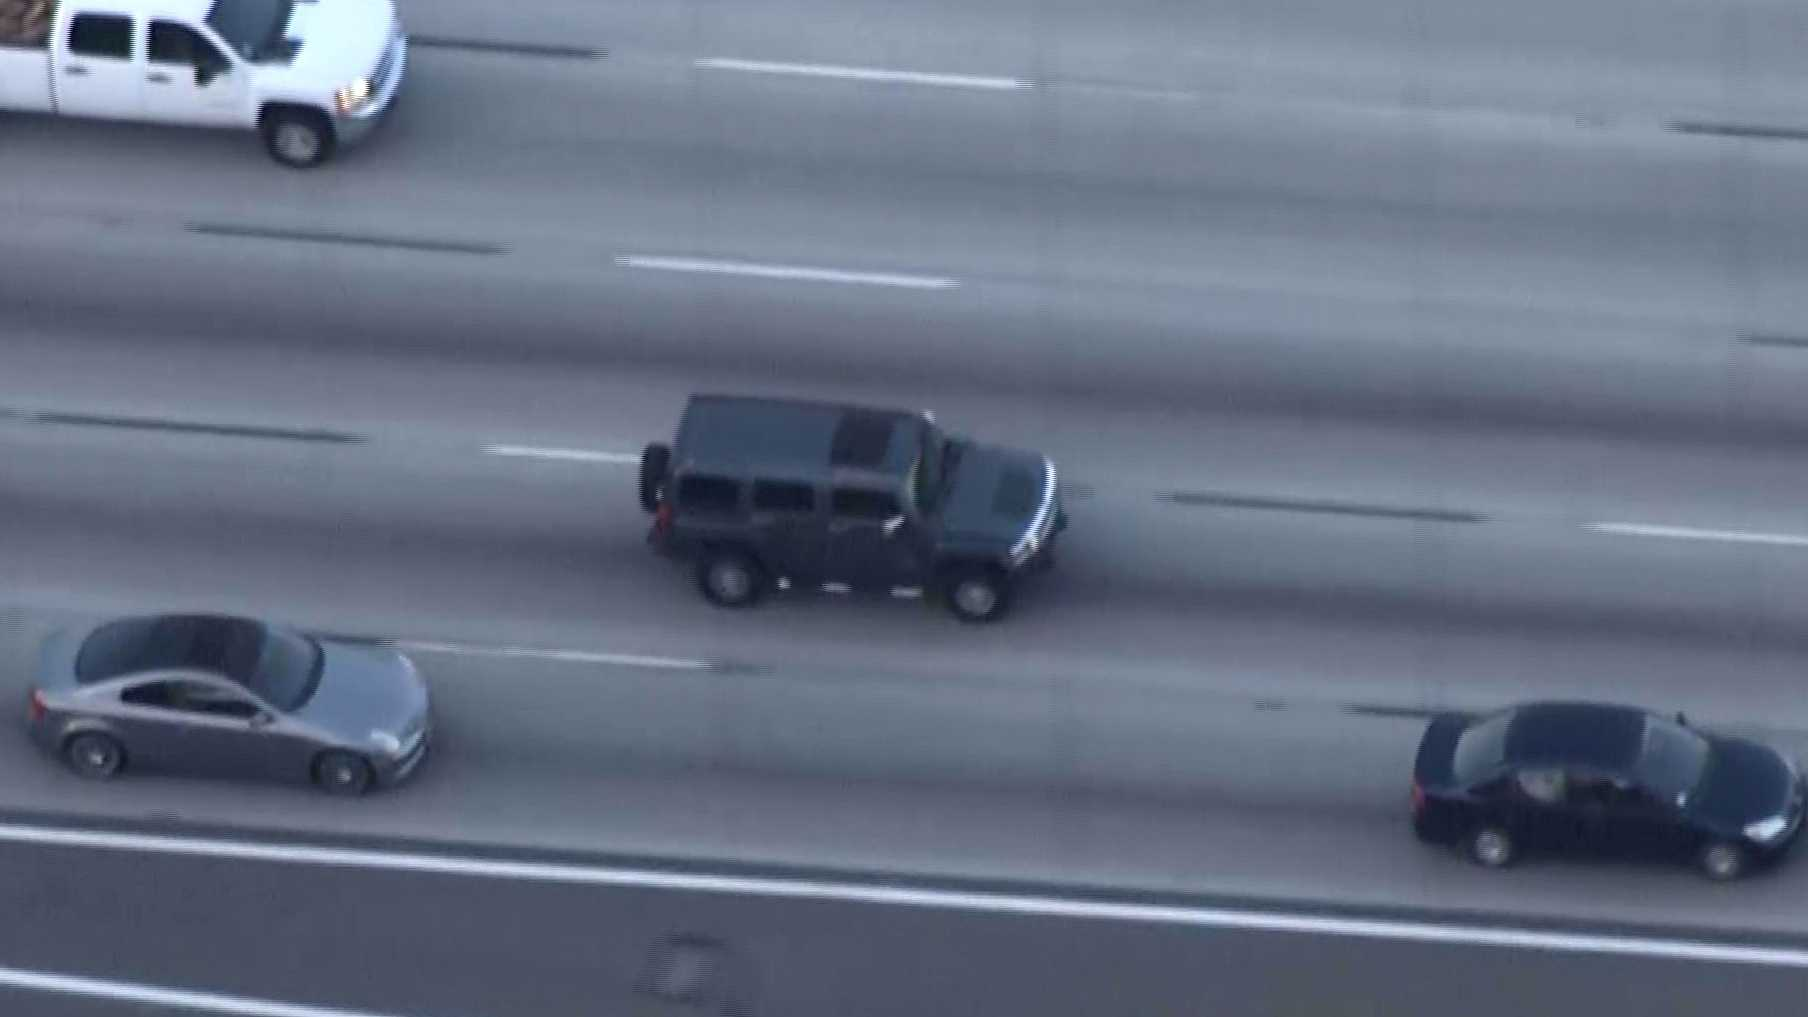 Aerial photo from KNBC helicopter shows a gray Hummer driving away from California Highway Patrol officers on Monday, Feb. 29, 2016, in Orange County.